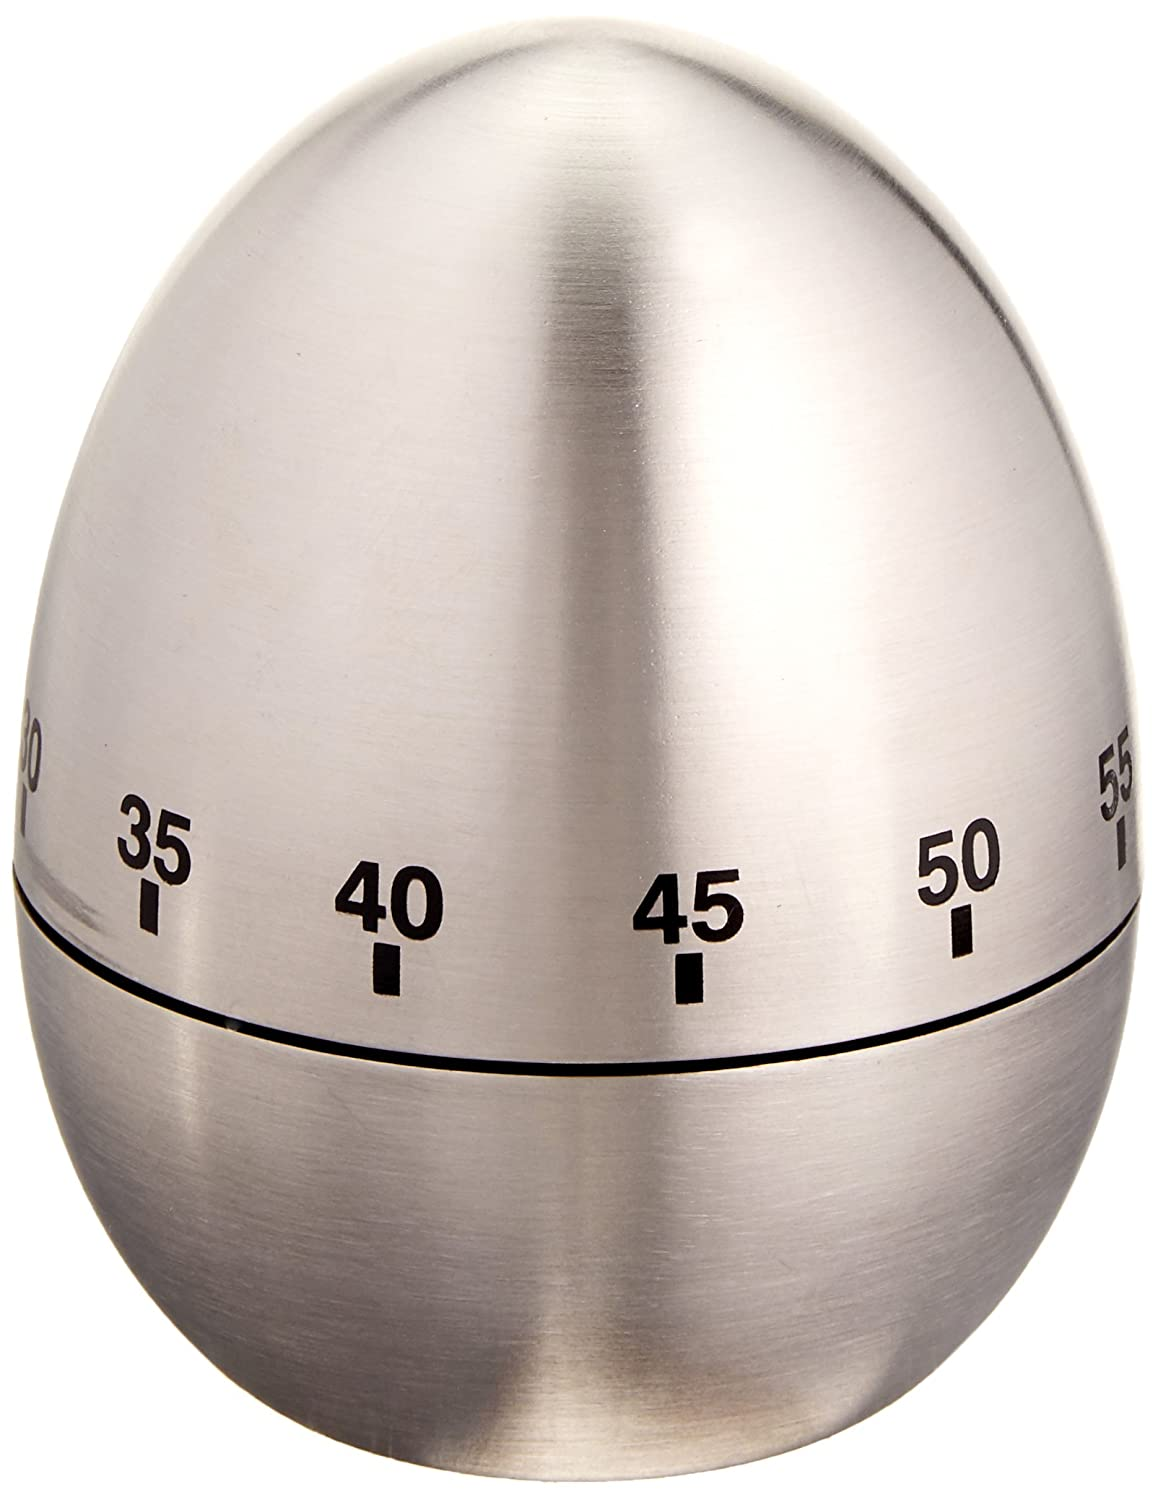 Ikea Ordning Kitchen Timer Amazoncom Norpro 1481 Stainless Steel Egg Timer Kitchen Dining